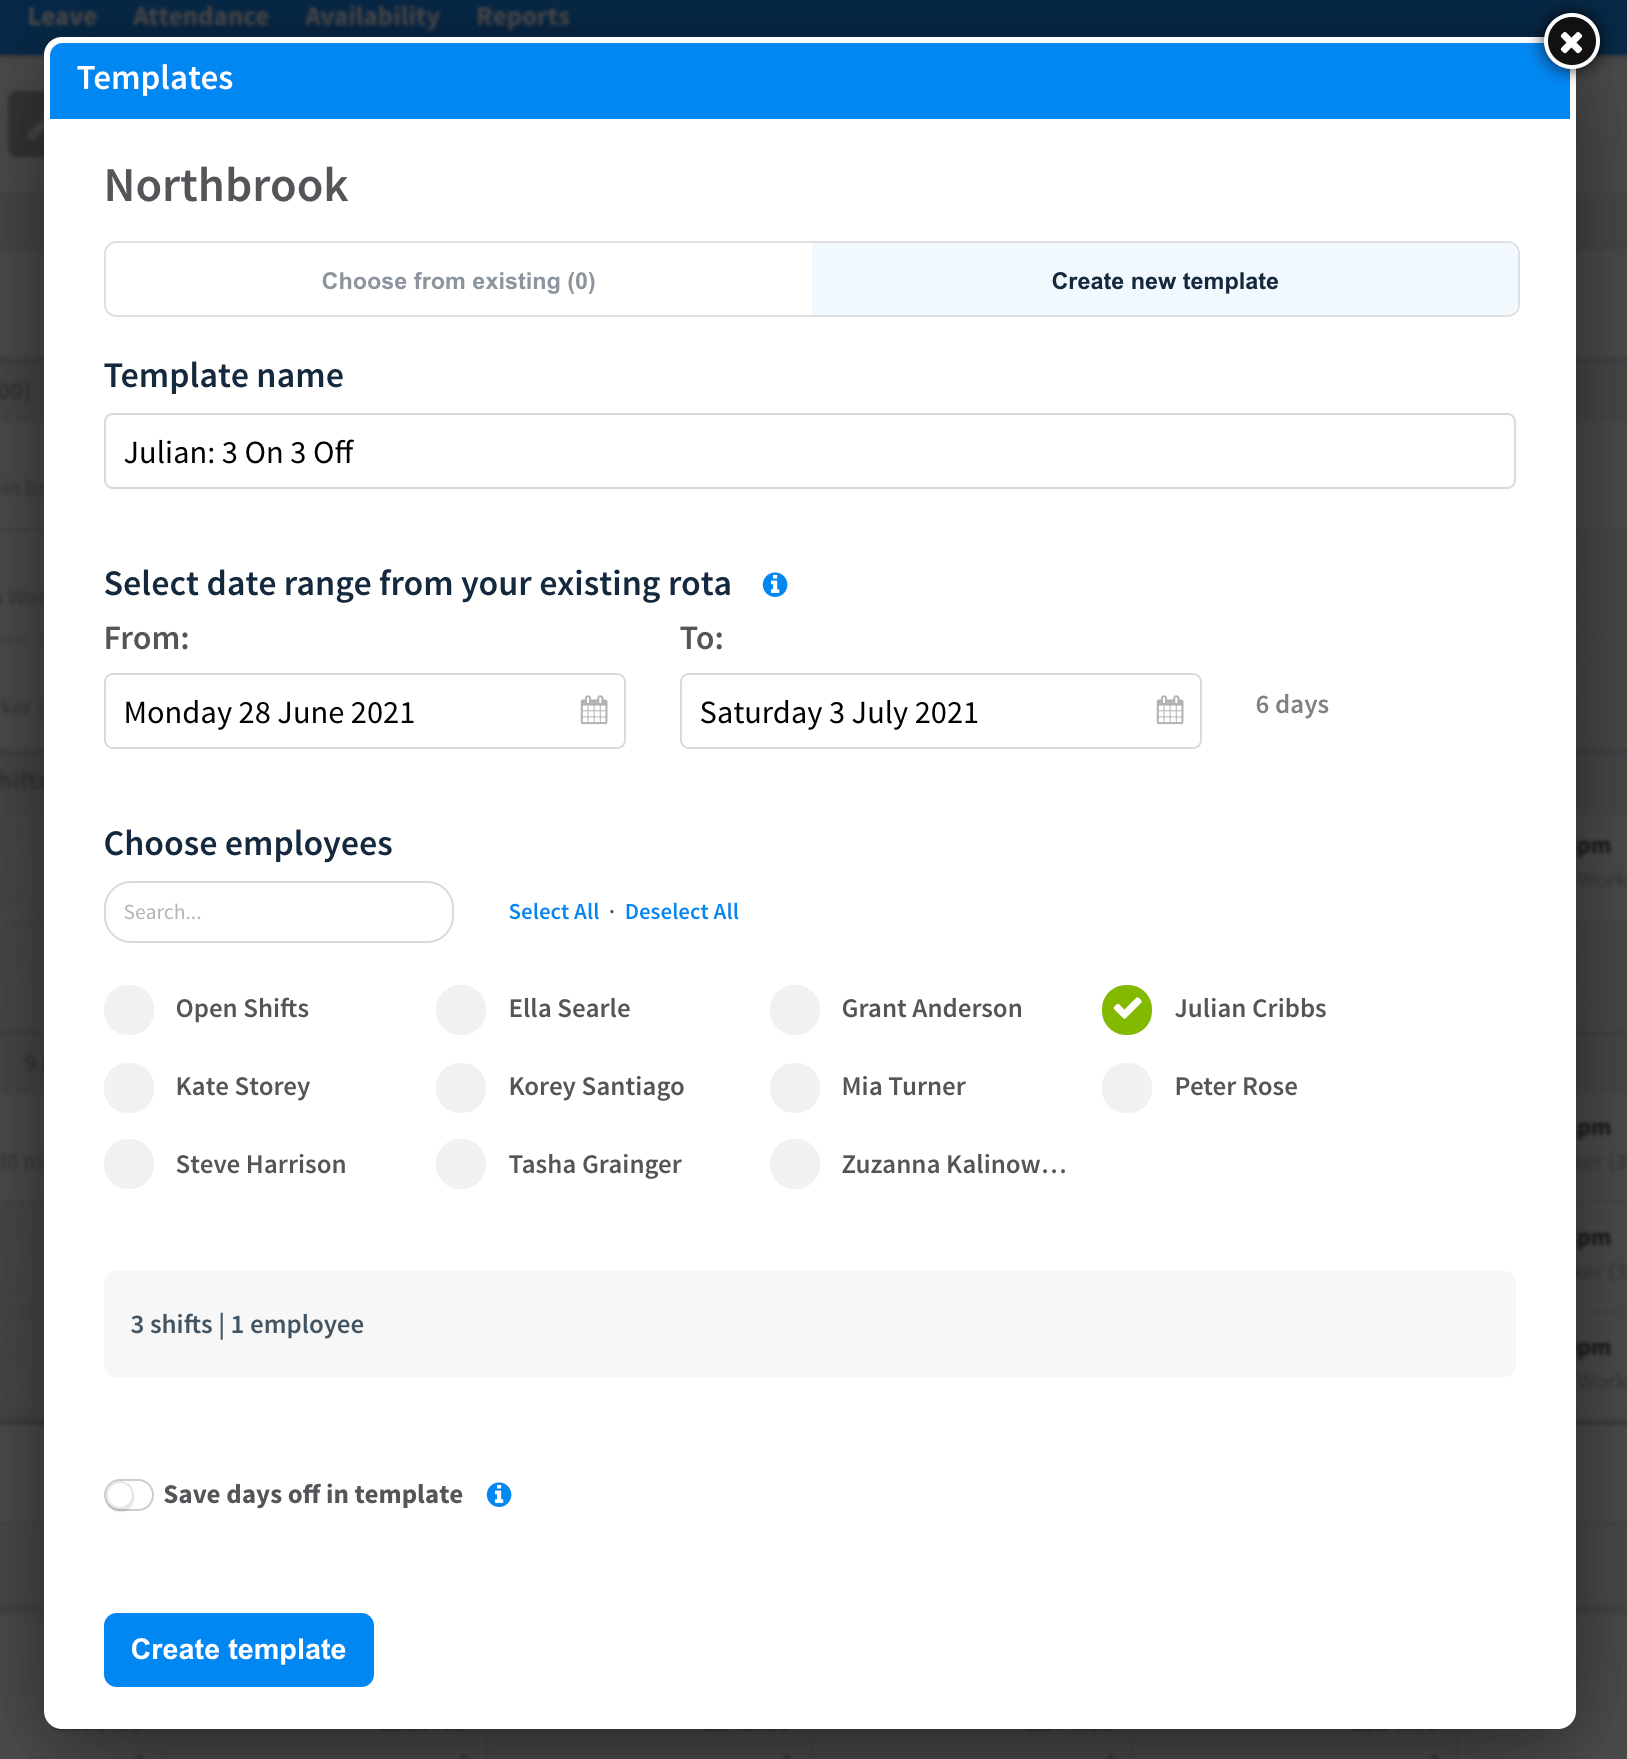 A template creation menu in RotaCloud, showing fields for template name, date range, lists of employees